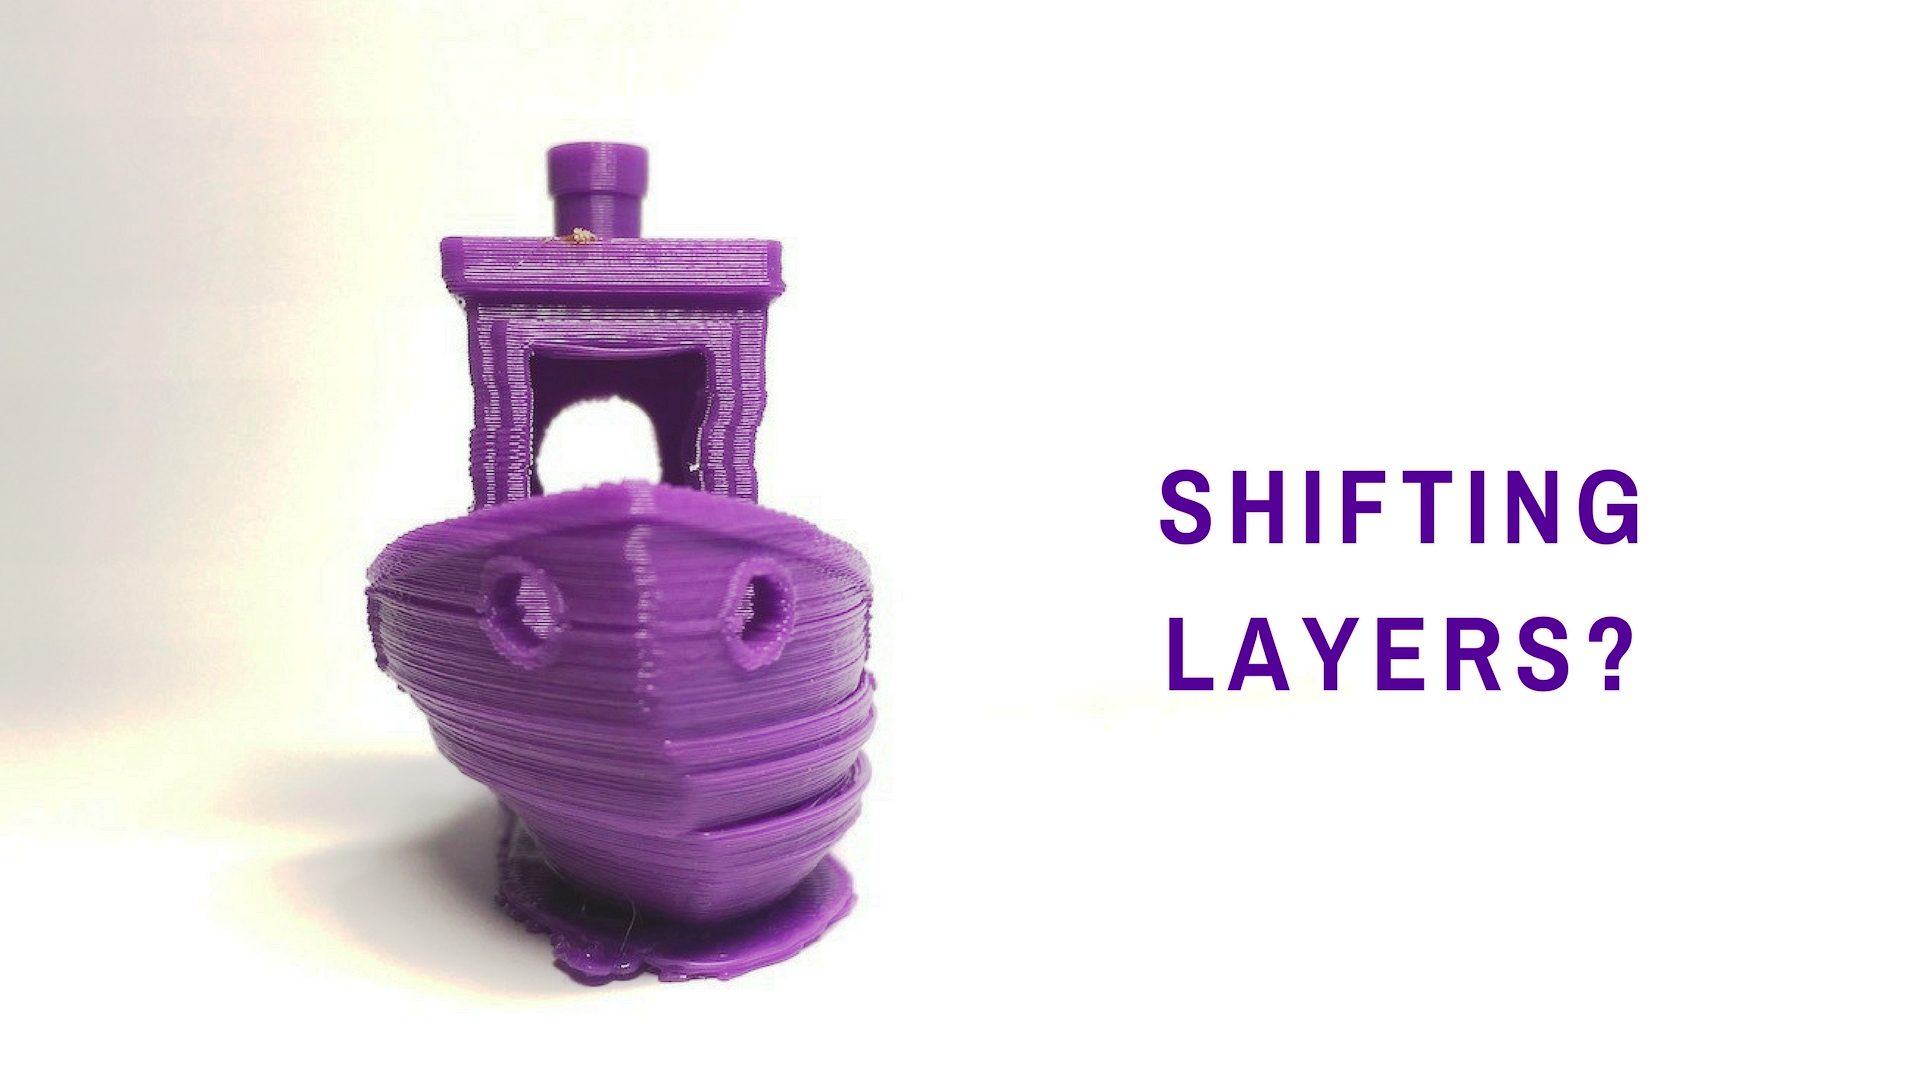 Troubleshooting: Easy ways you can prevent layer shifts